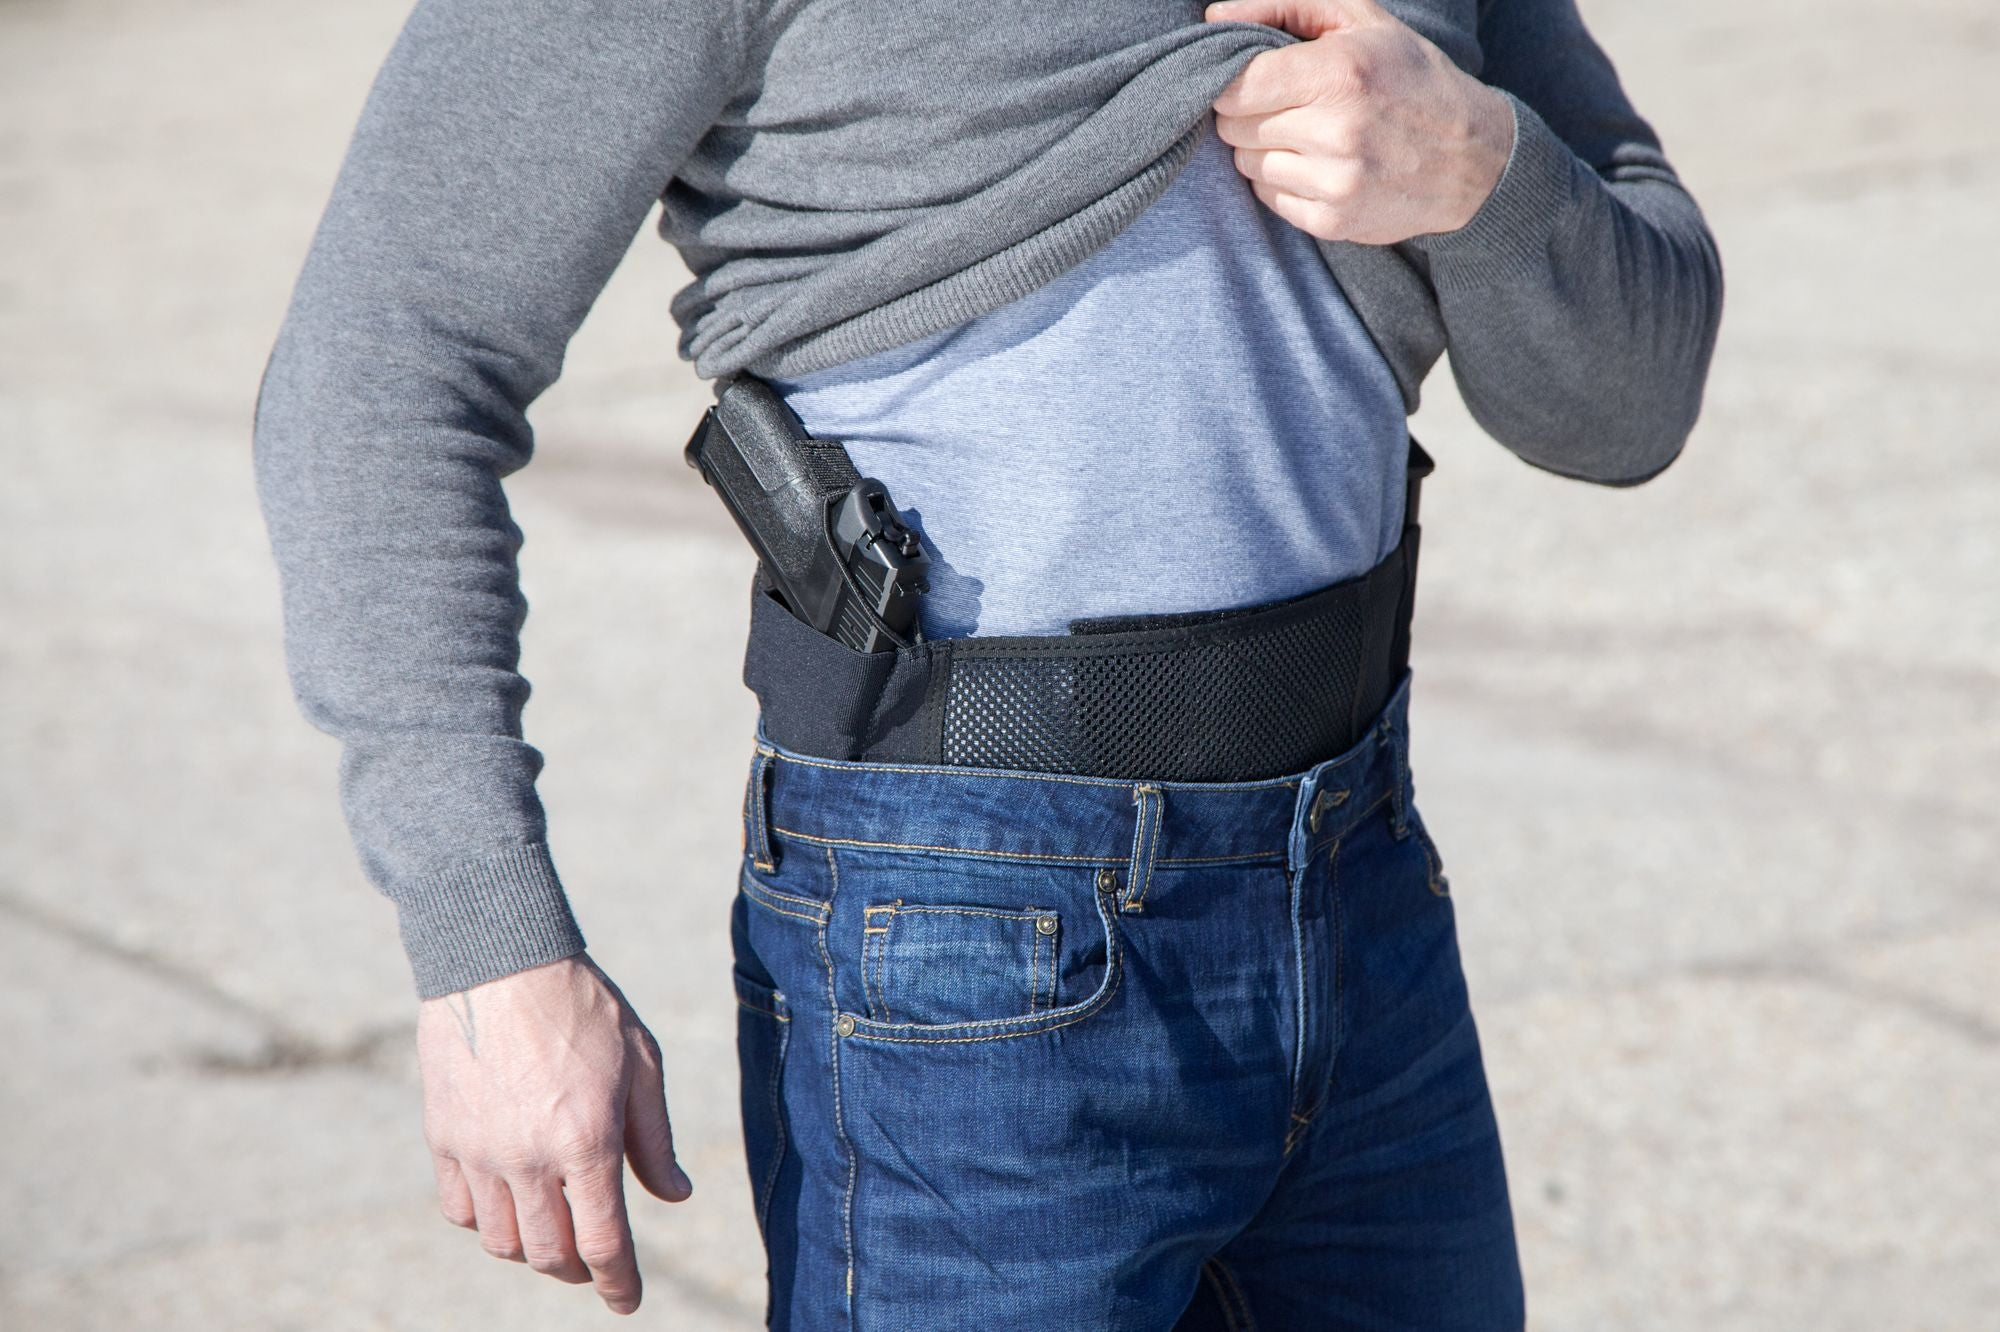 How To Use A Belly Band Holster?